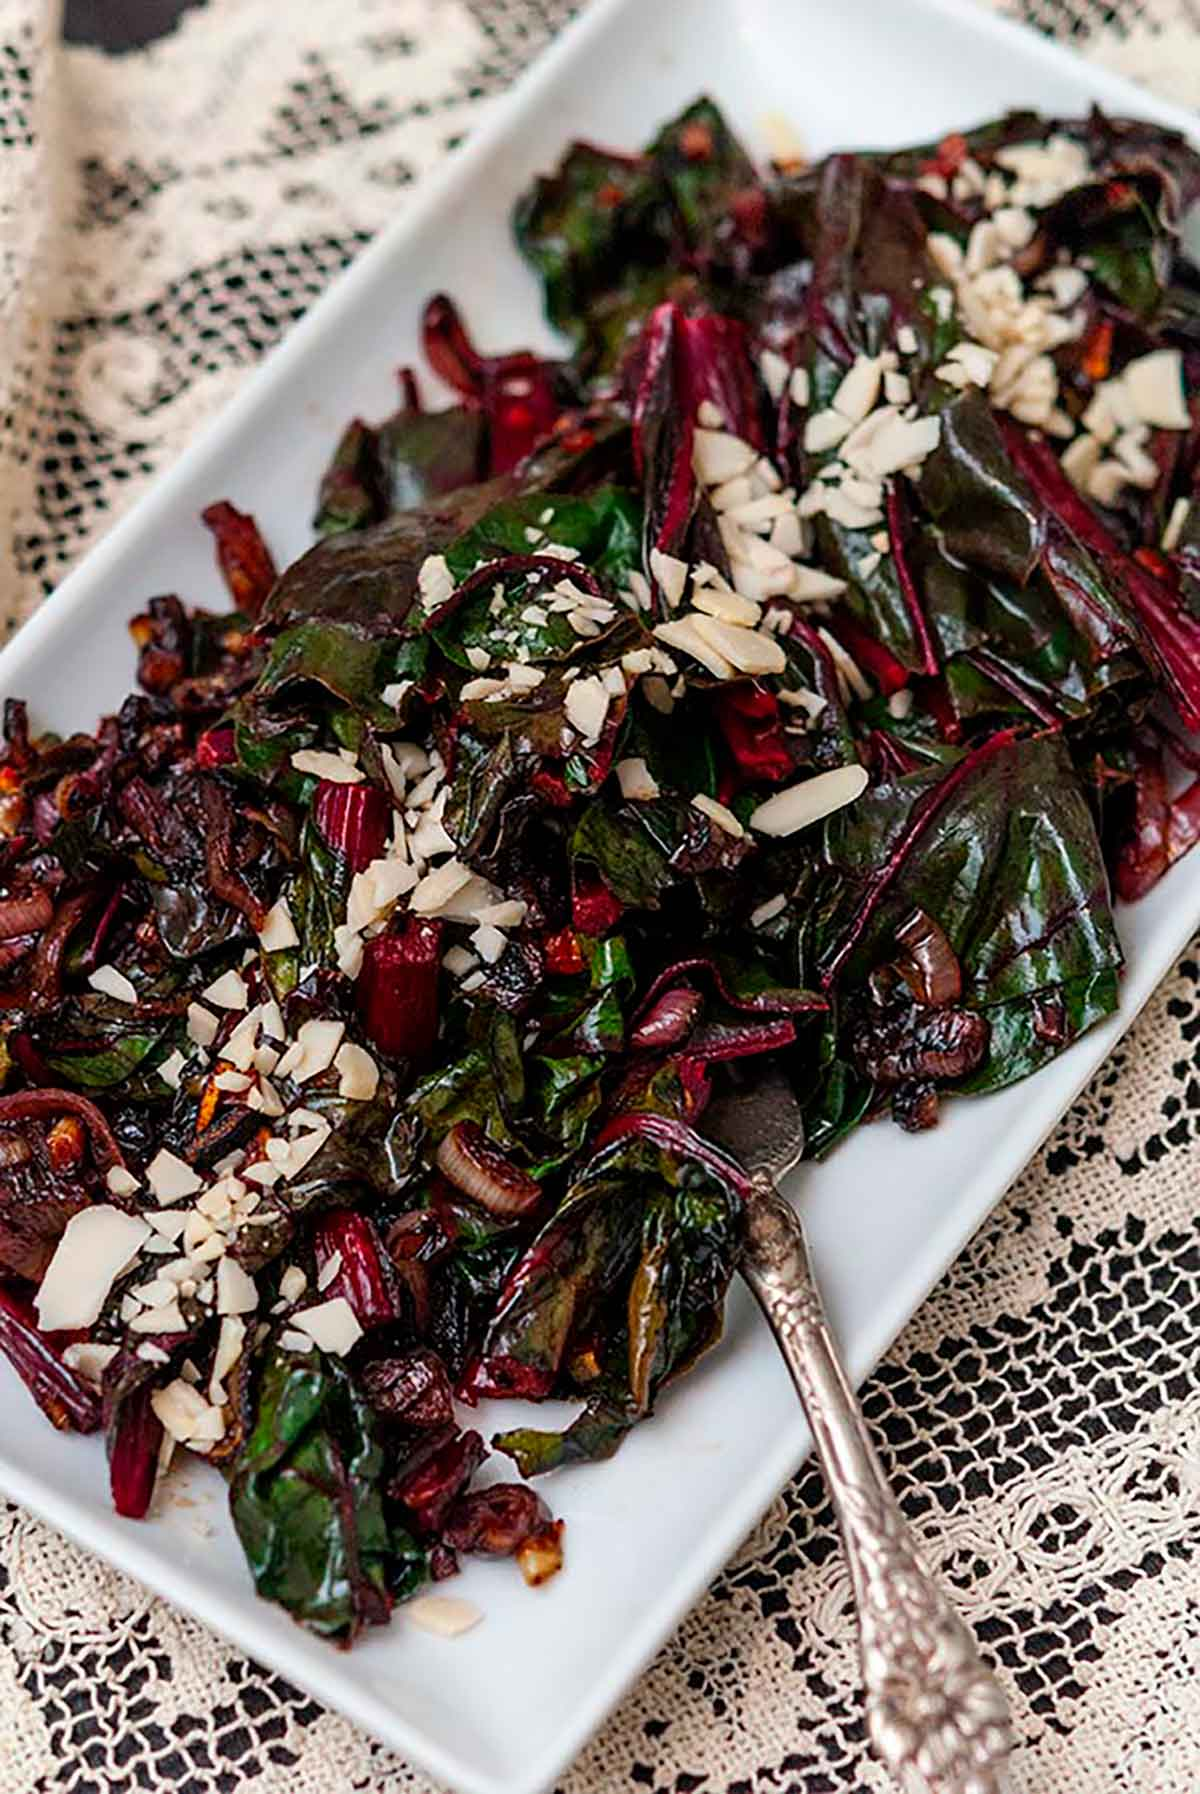 A plate of Swiss chard on a lace table cloth.